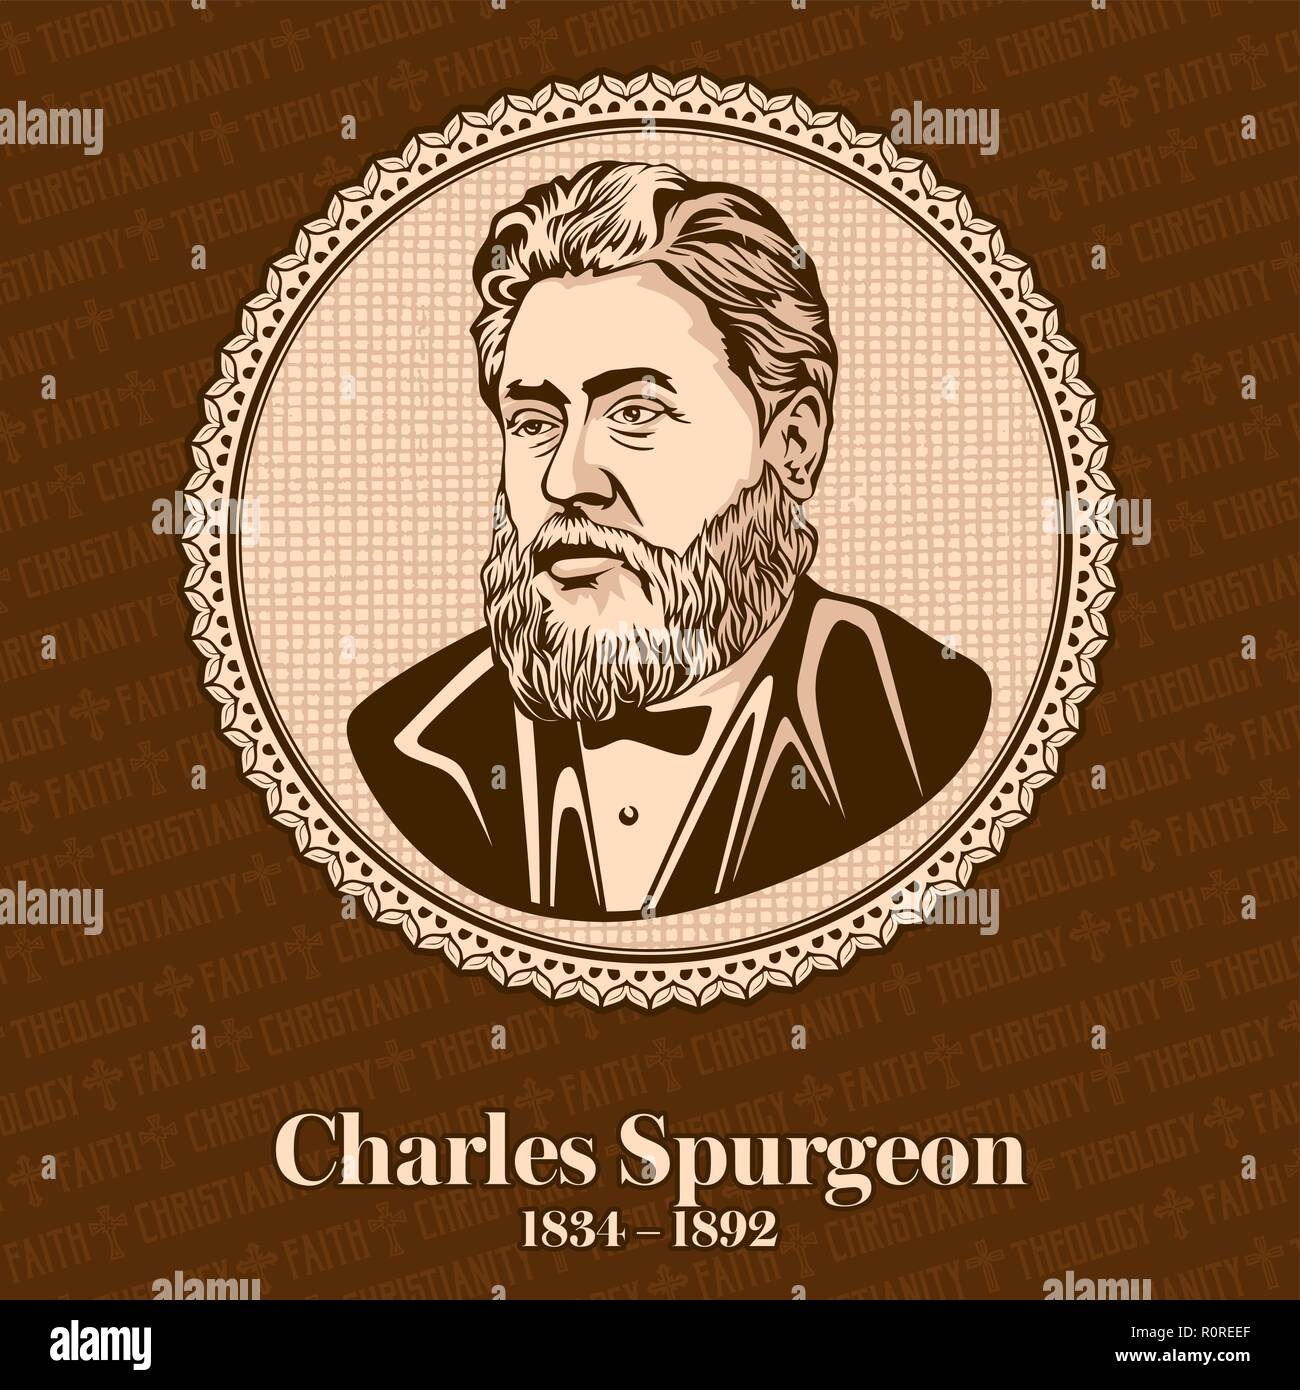 Charles Haddon Spurgeon (1834 – 1892) was an English Particular Baptist preacher. Spurgeon remains highly influential among Christians of various deno - Stock Vector